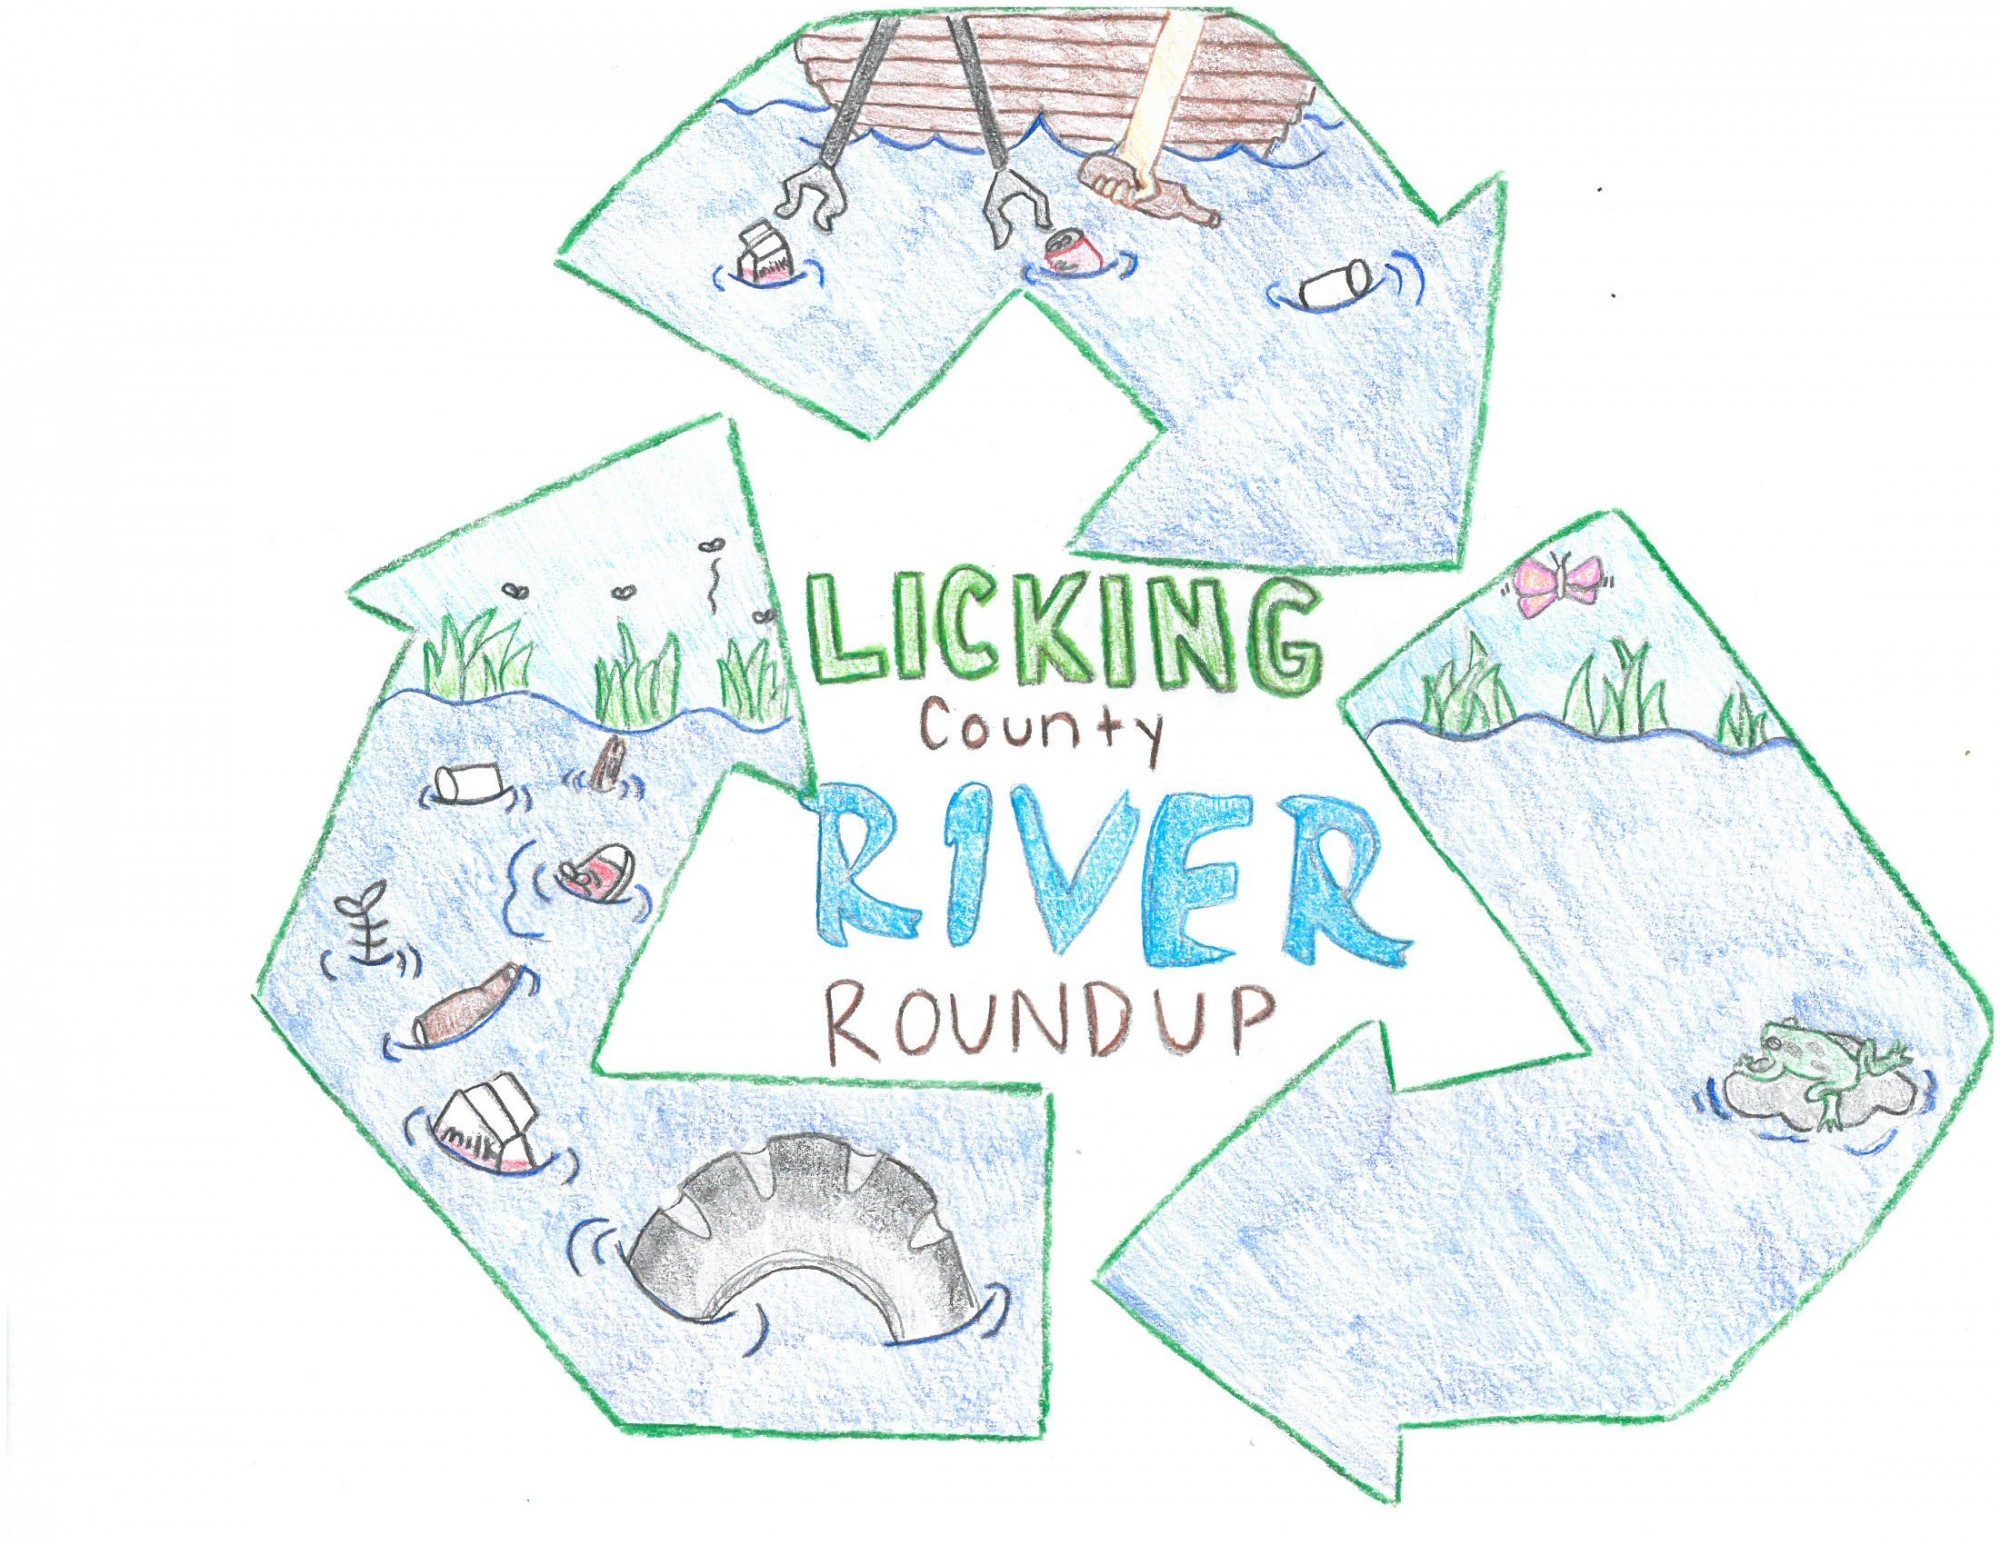 Licking County River Round Up, September 9